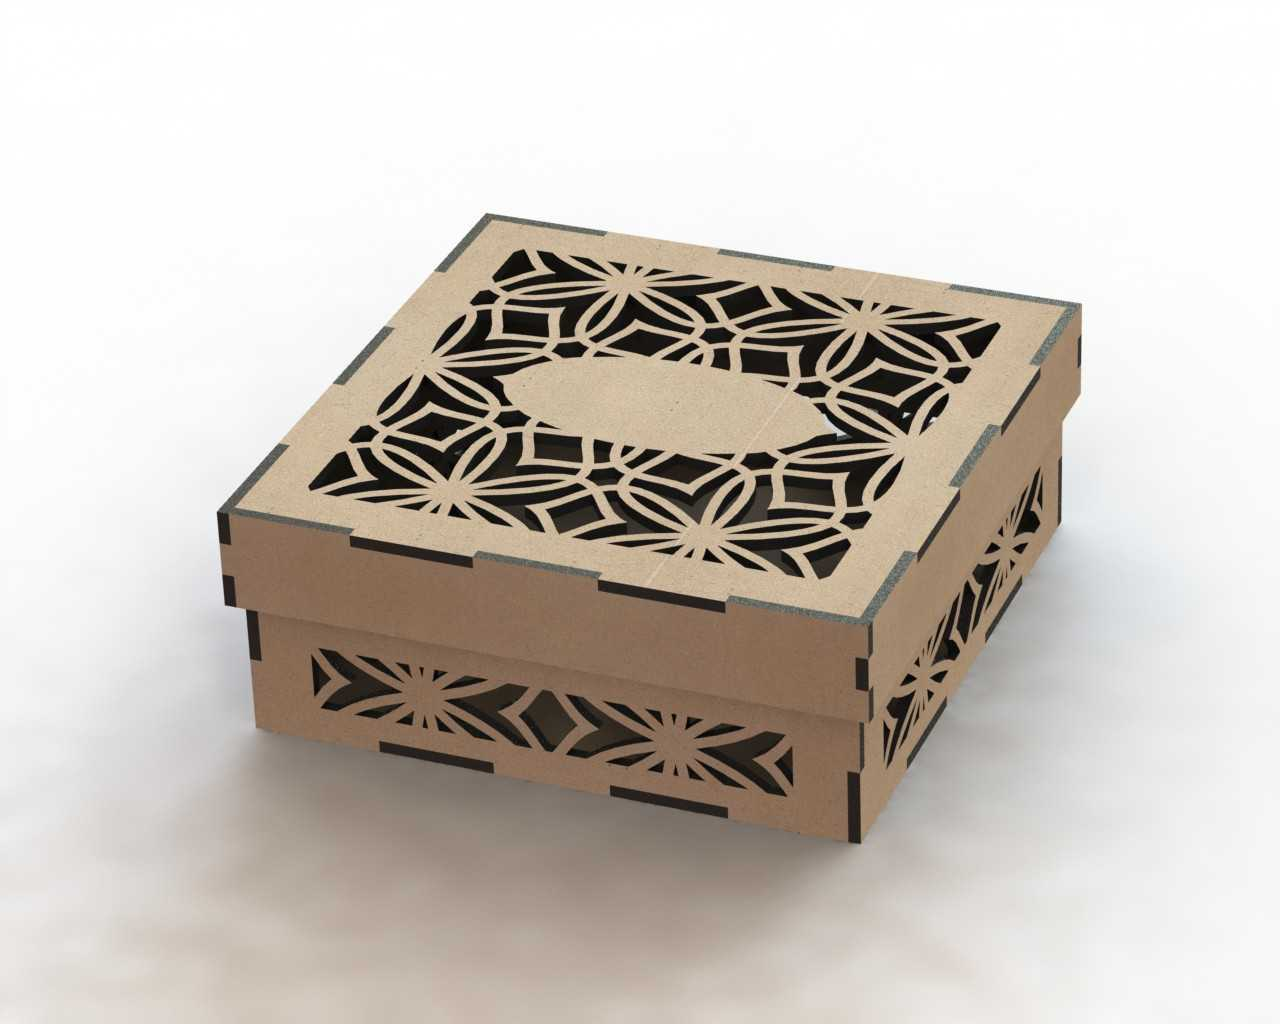 Laser Cut Box Template Free DXF File